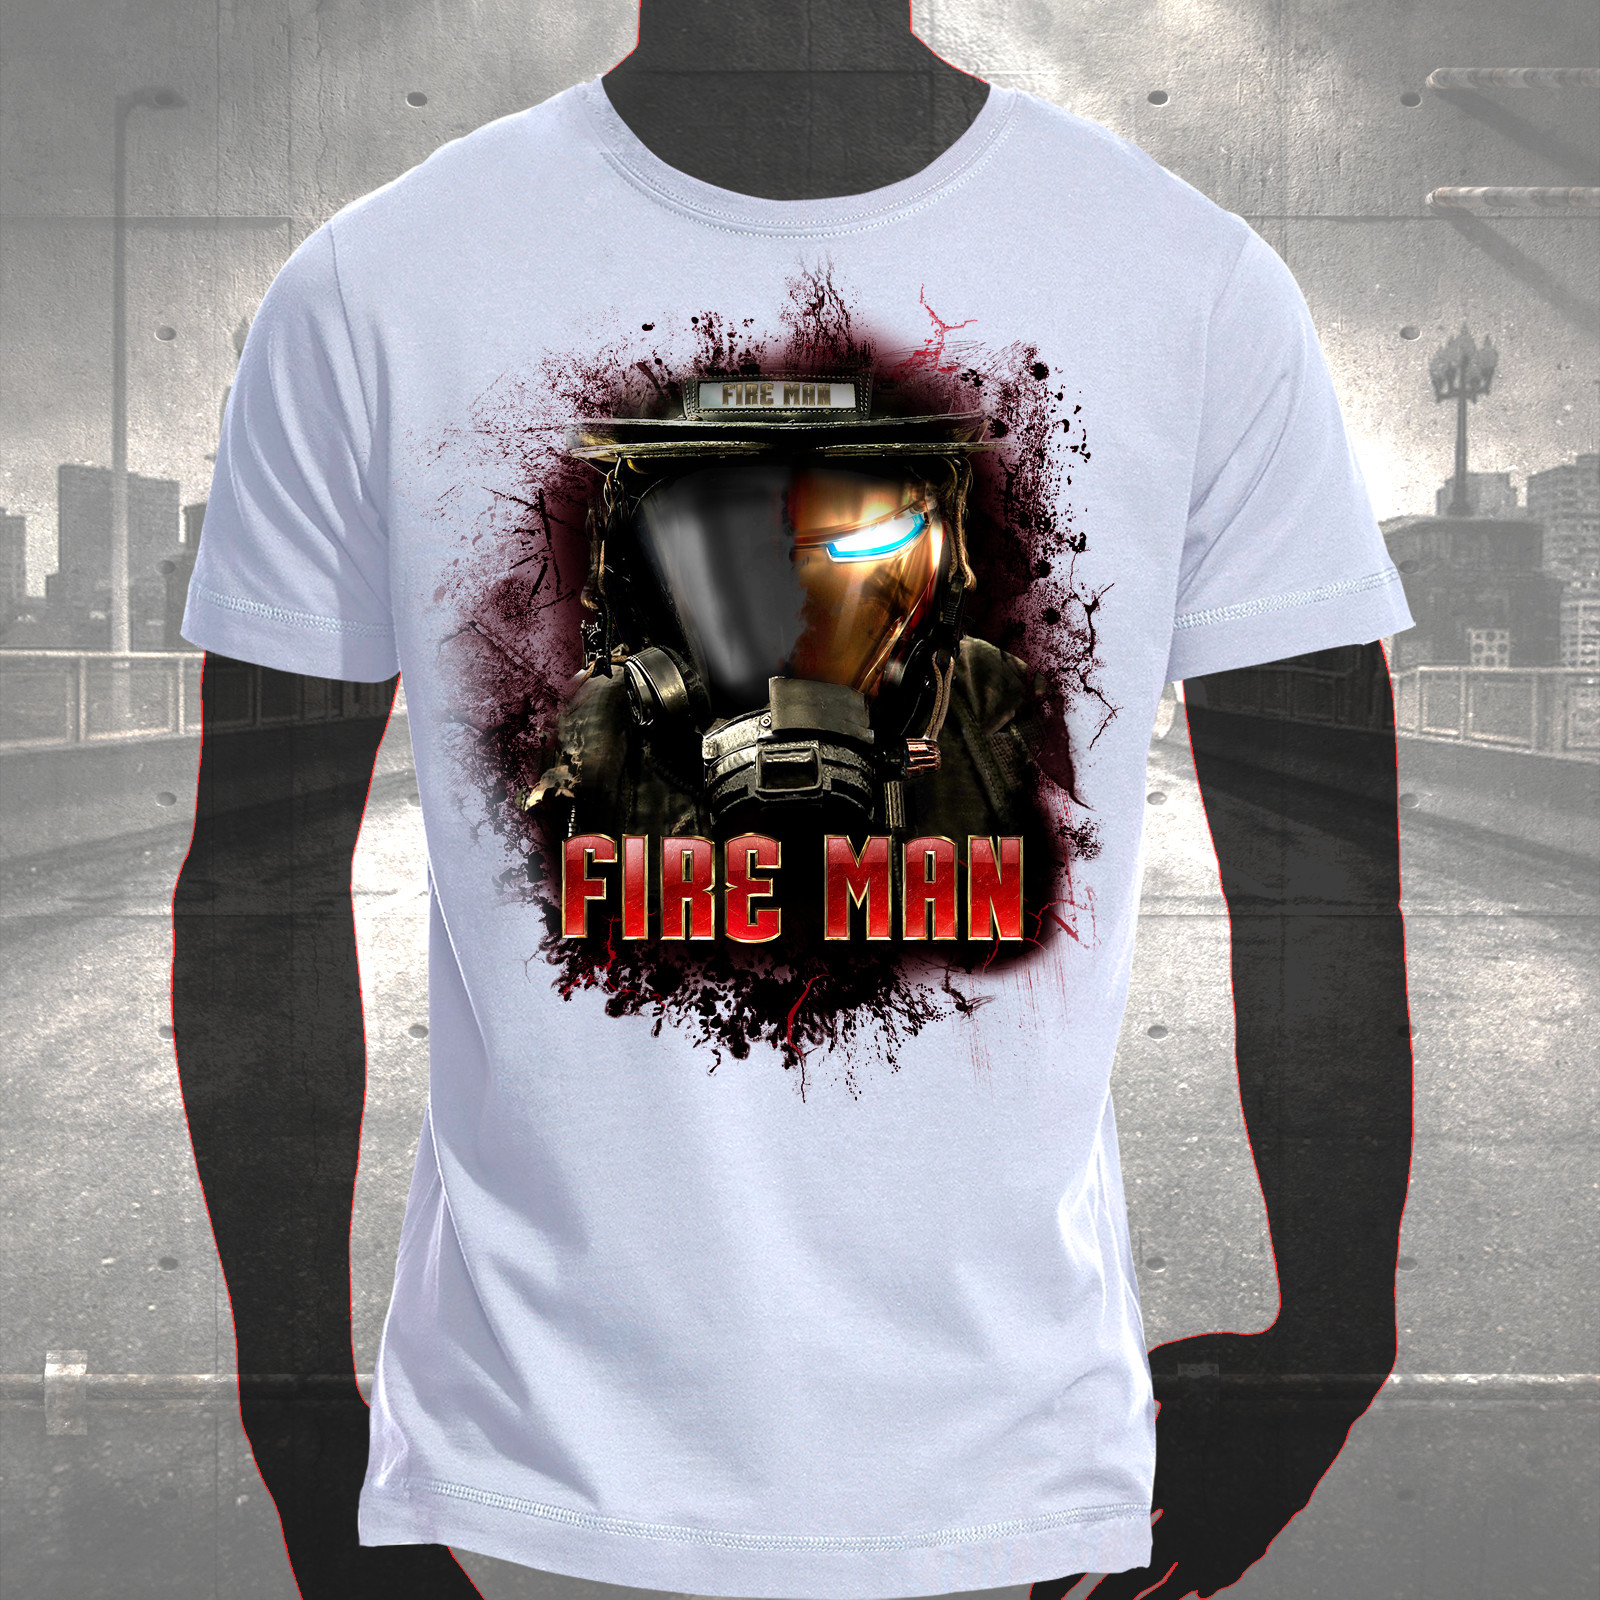 T shirt fire man hauptstadtfeuerwehr for On fire brand t shirts